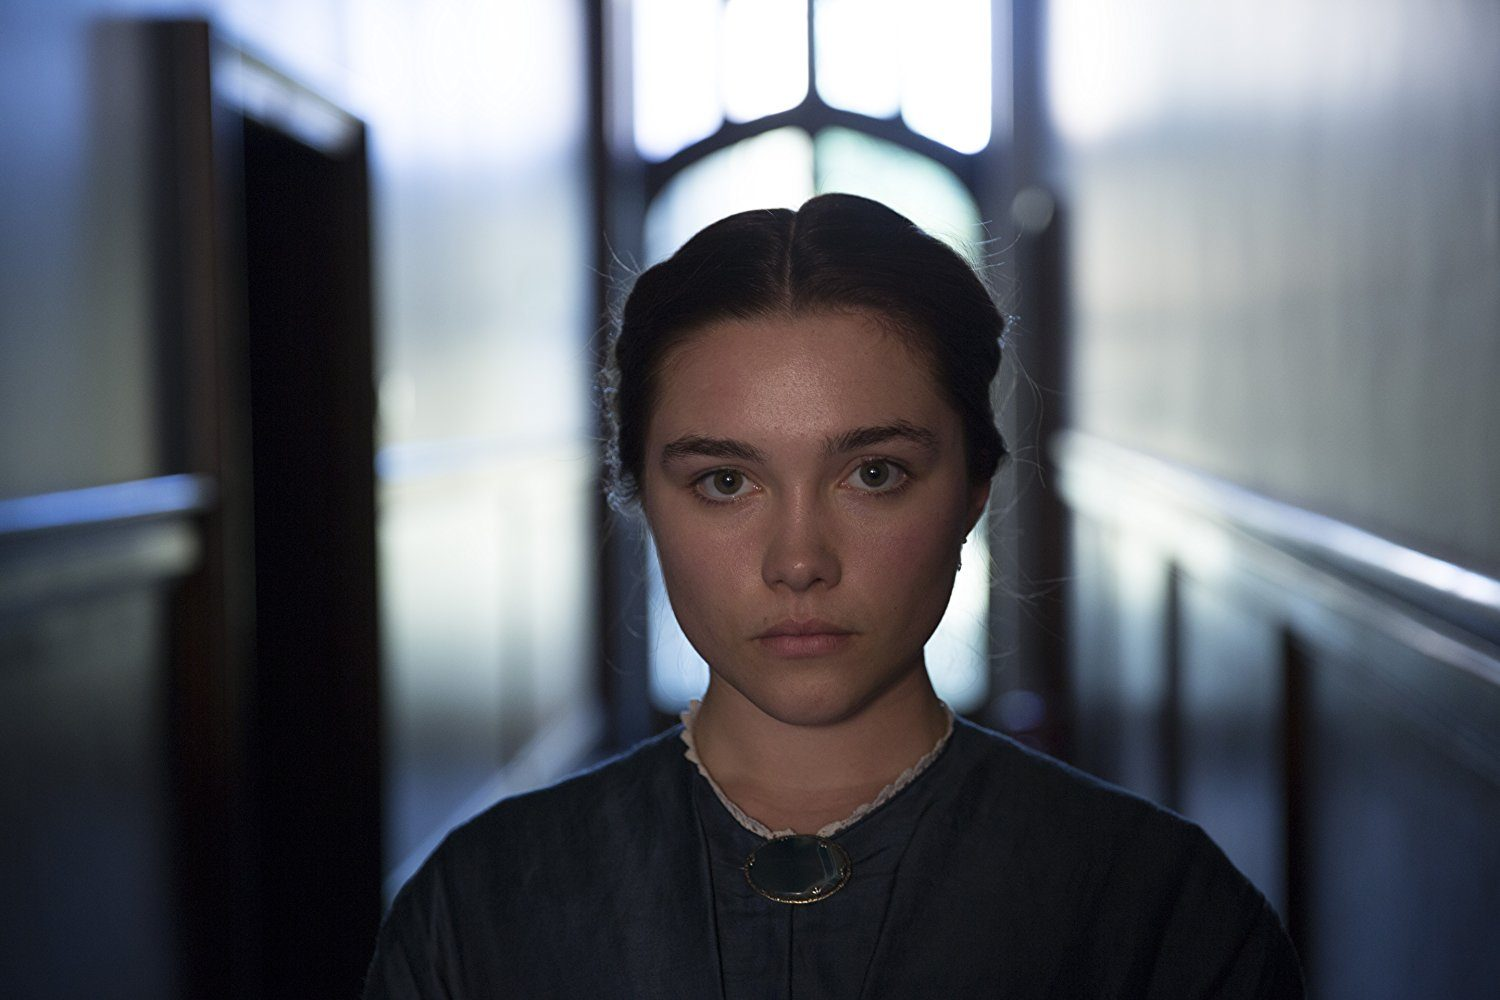 Crítica: Lady Macbeth (Reino Unido, 2017)